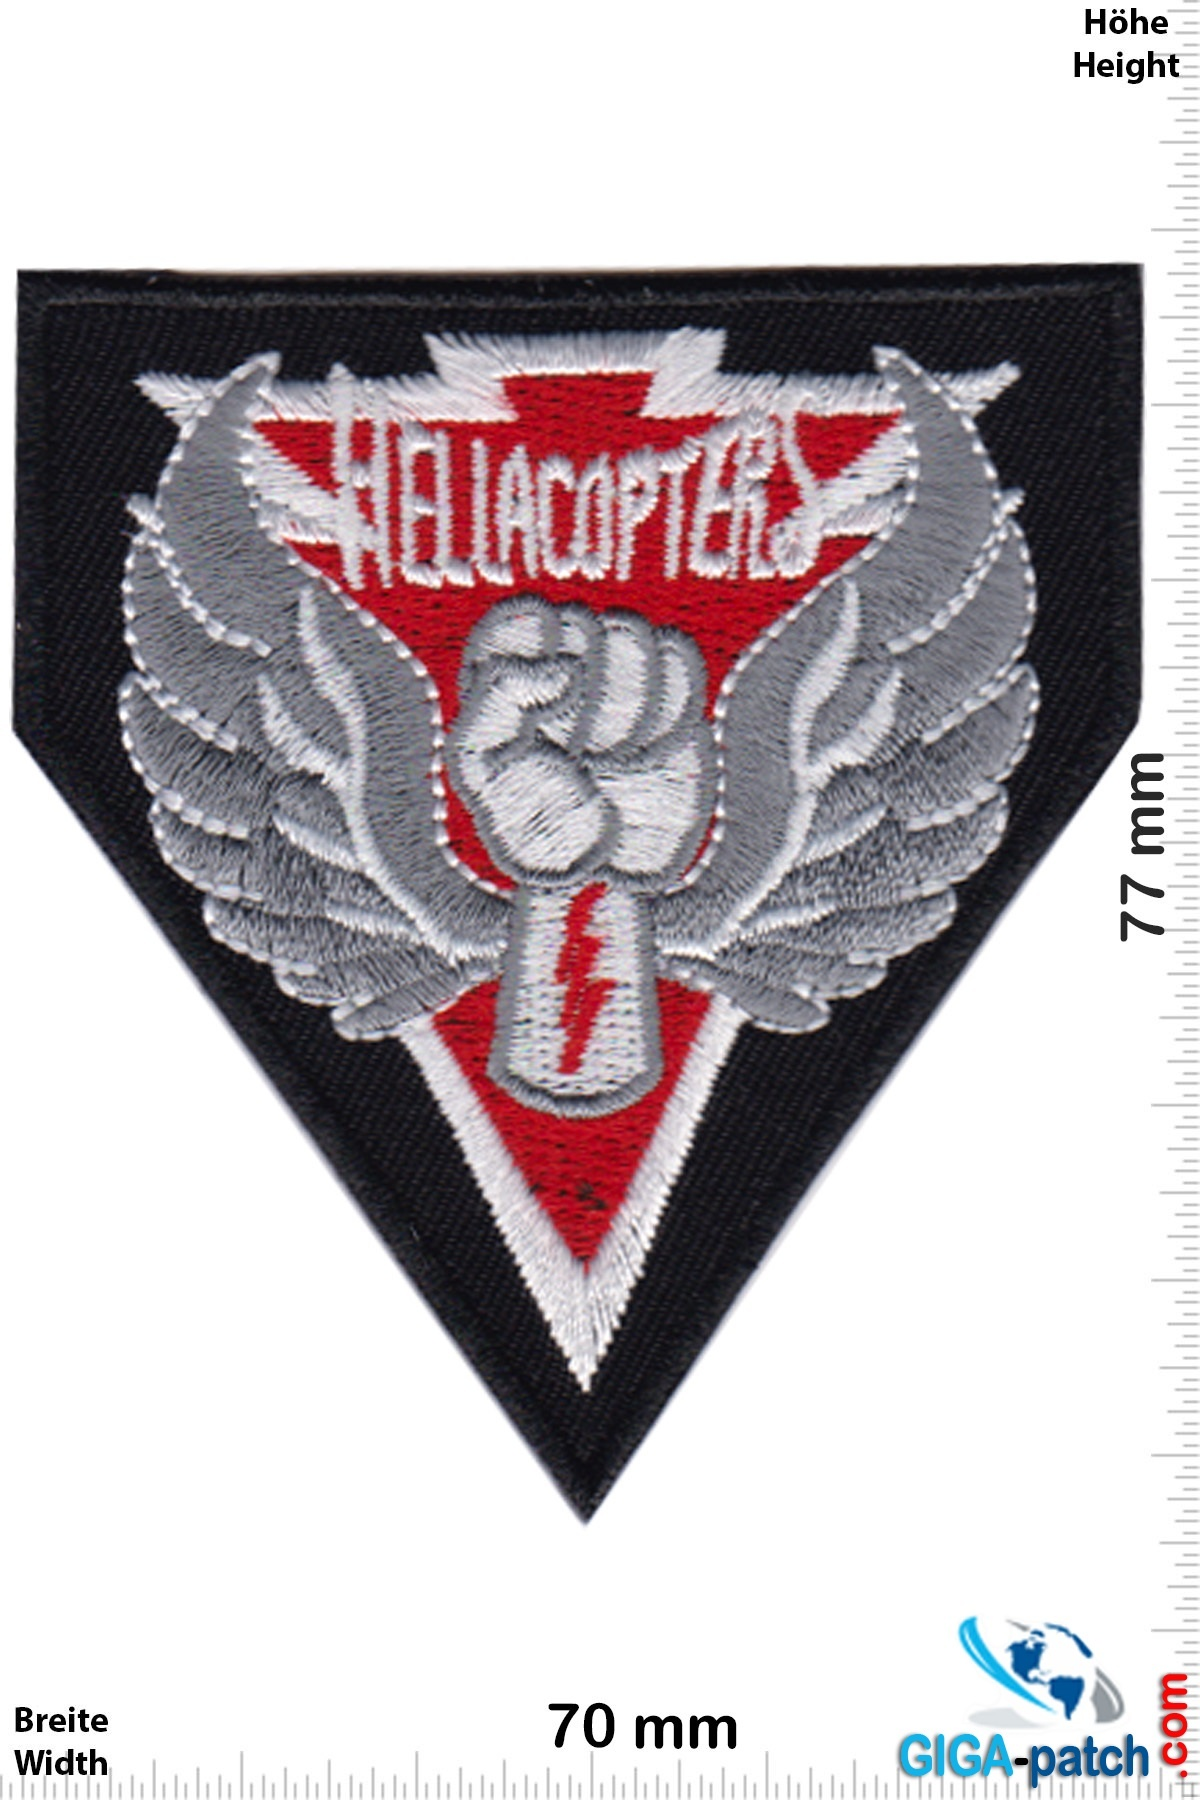 The Hellacopters - Hard- Sleazerock